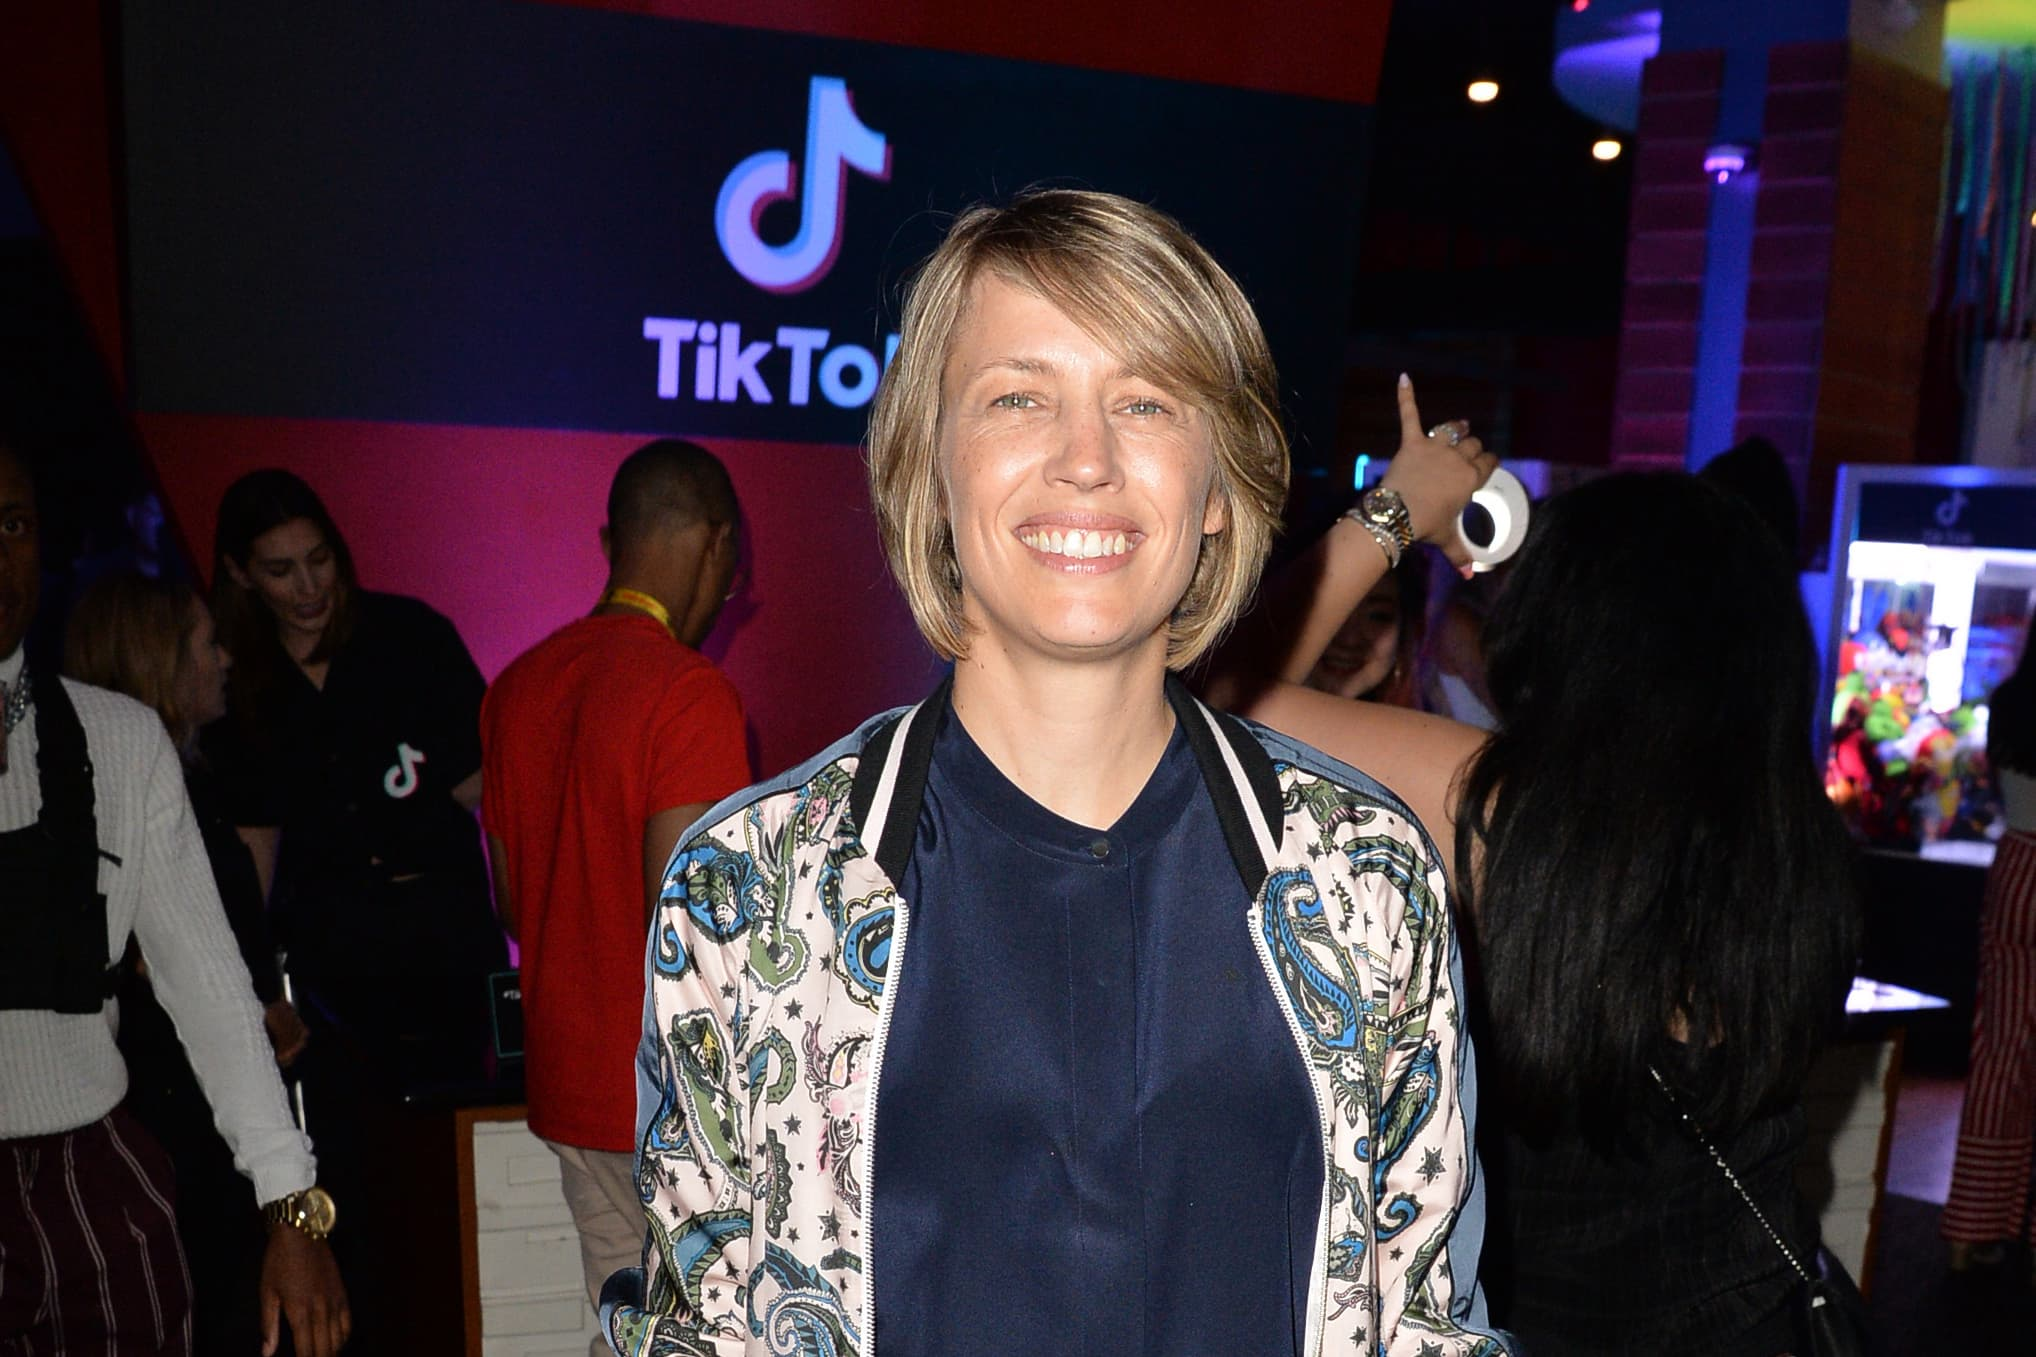 TikTok interim CEO: We already have 'synergies' with Walmart in e-commerce – CNBC